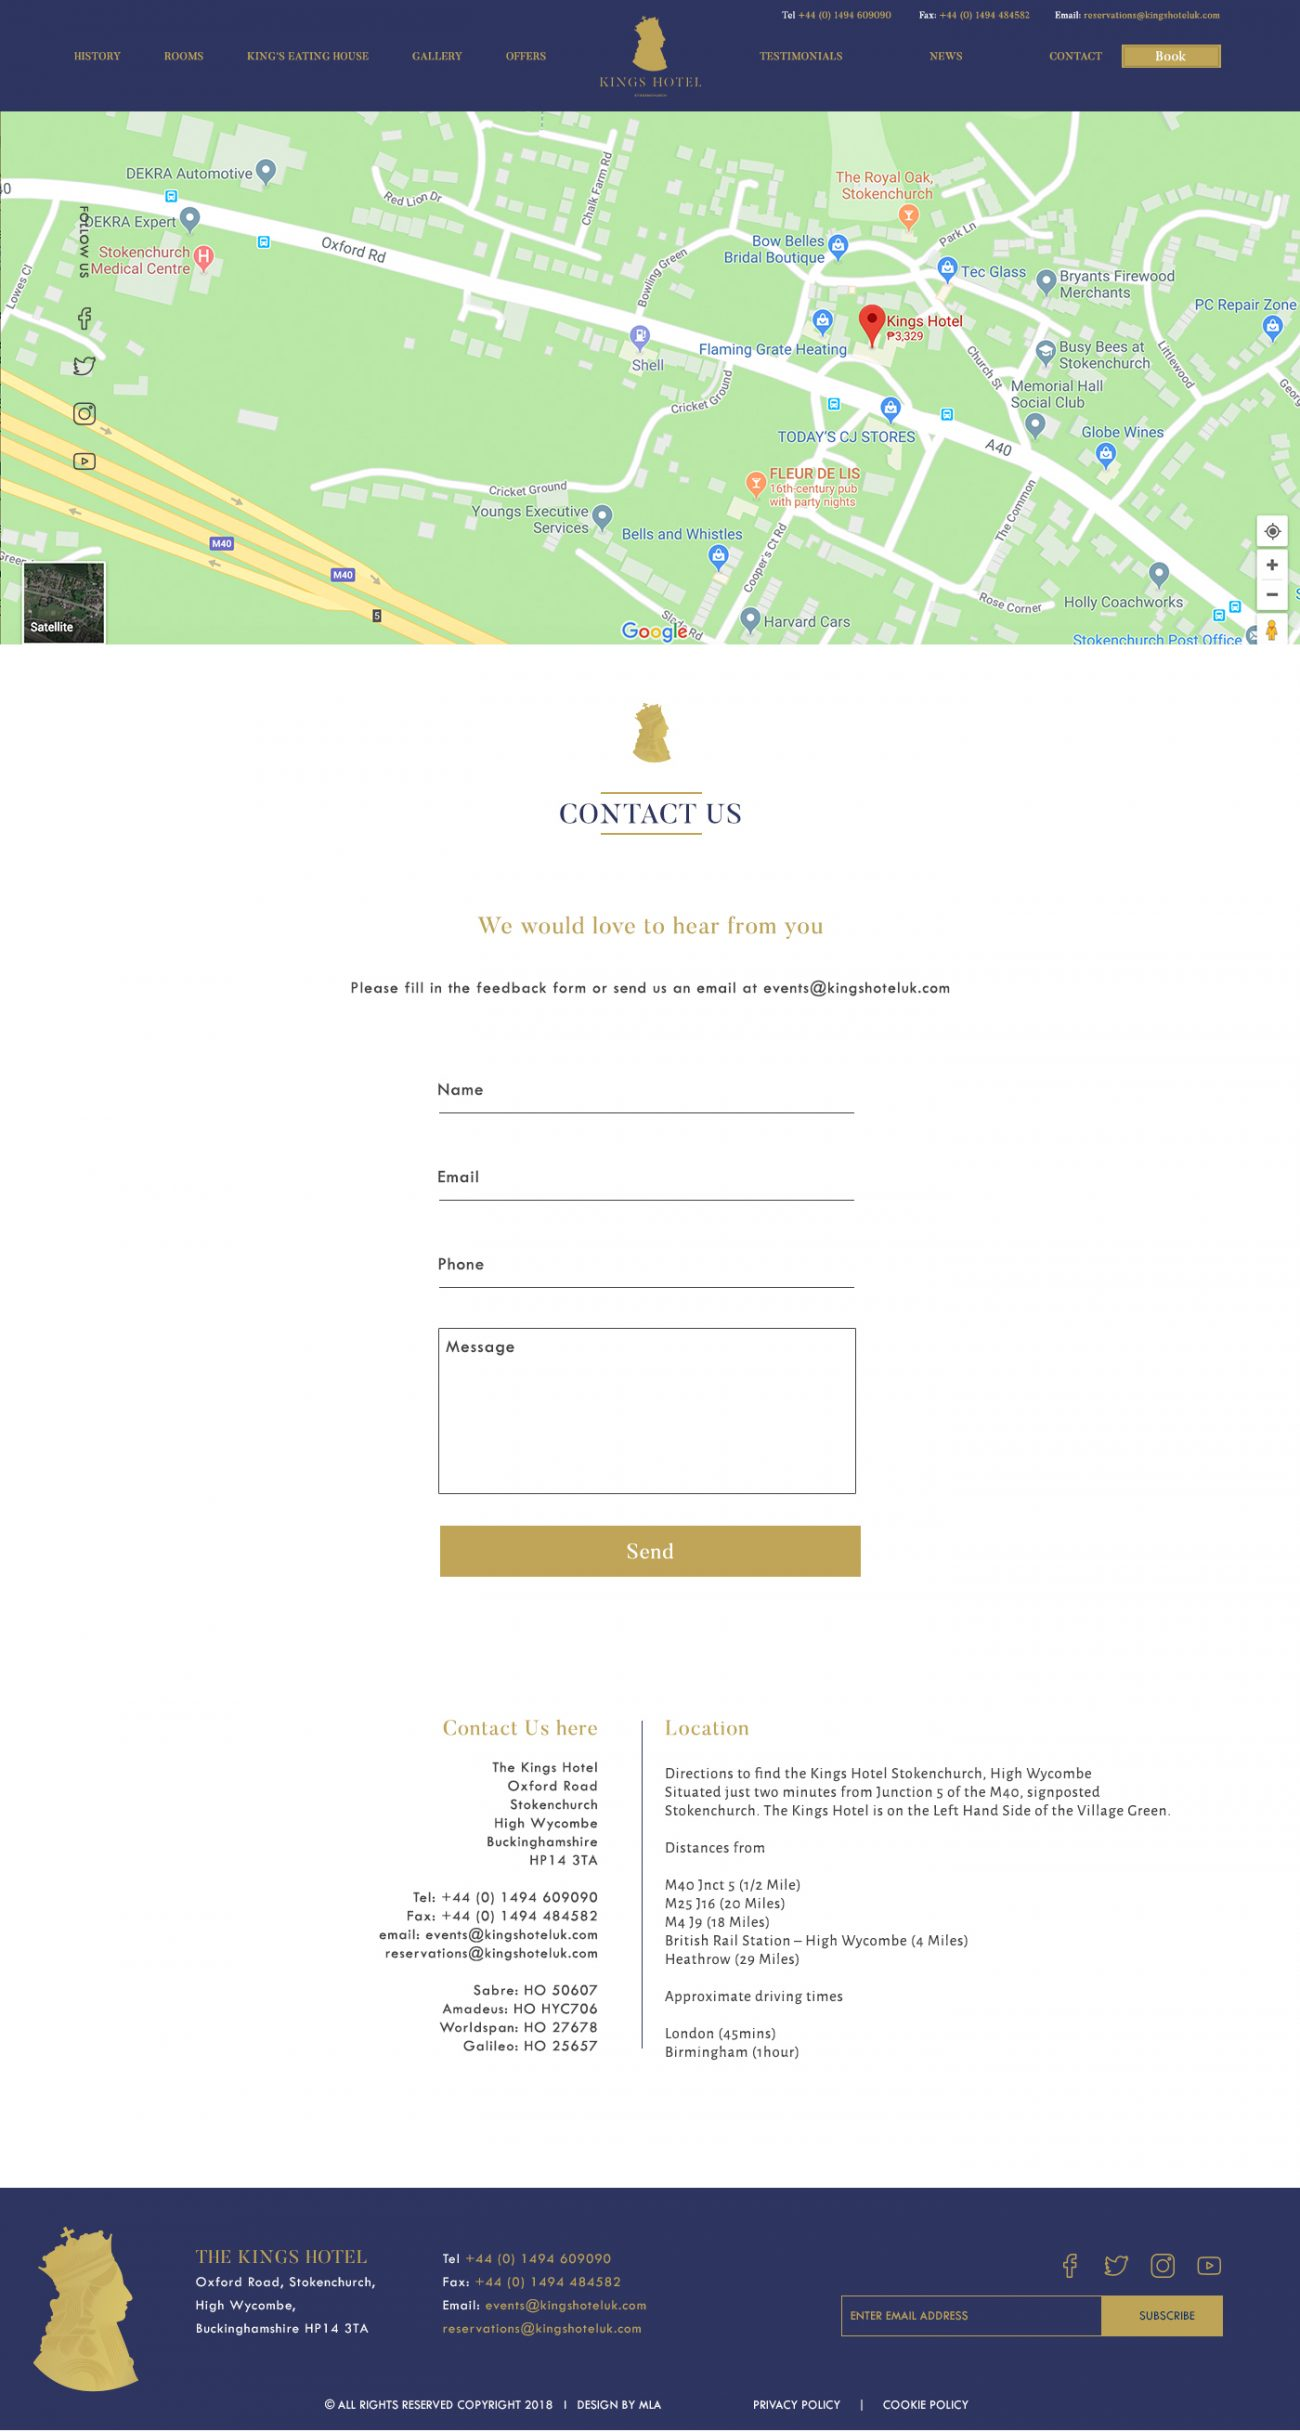 The Kings Hotel contact page - Web design London - web design agency london